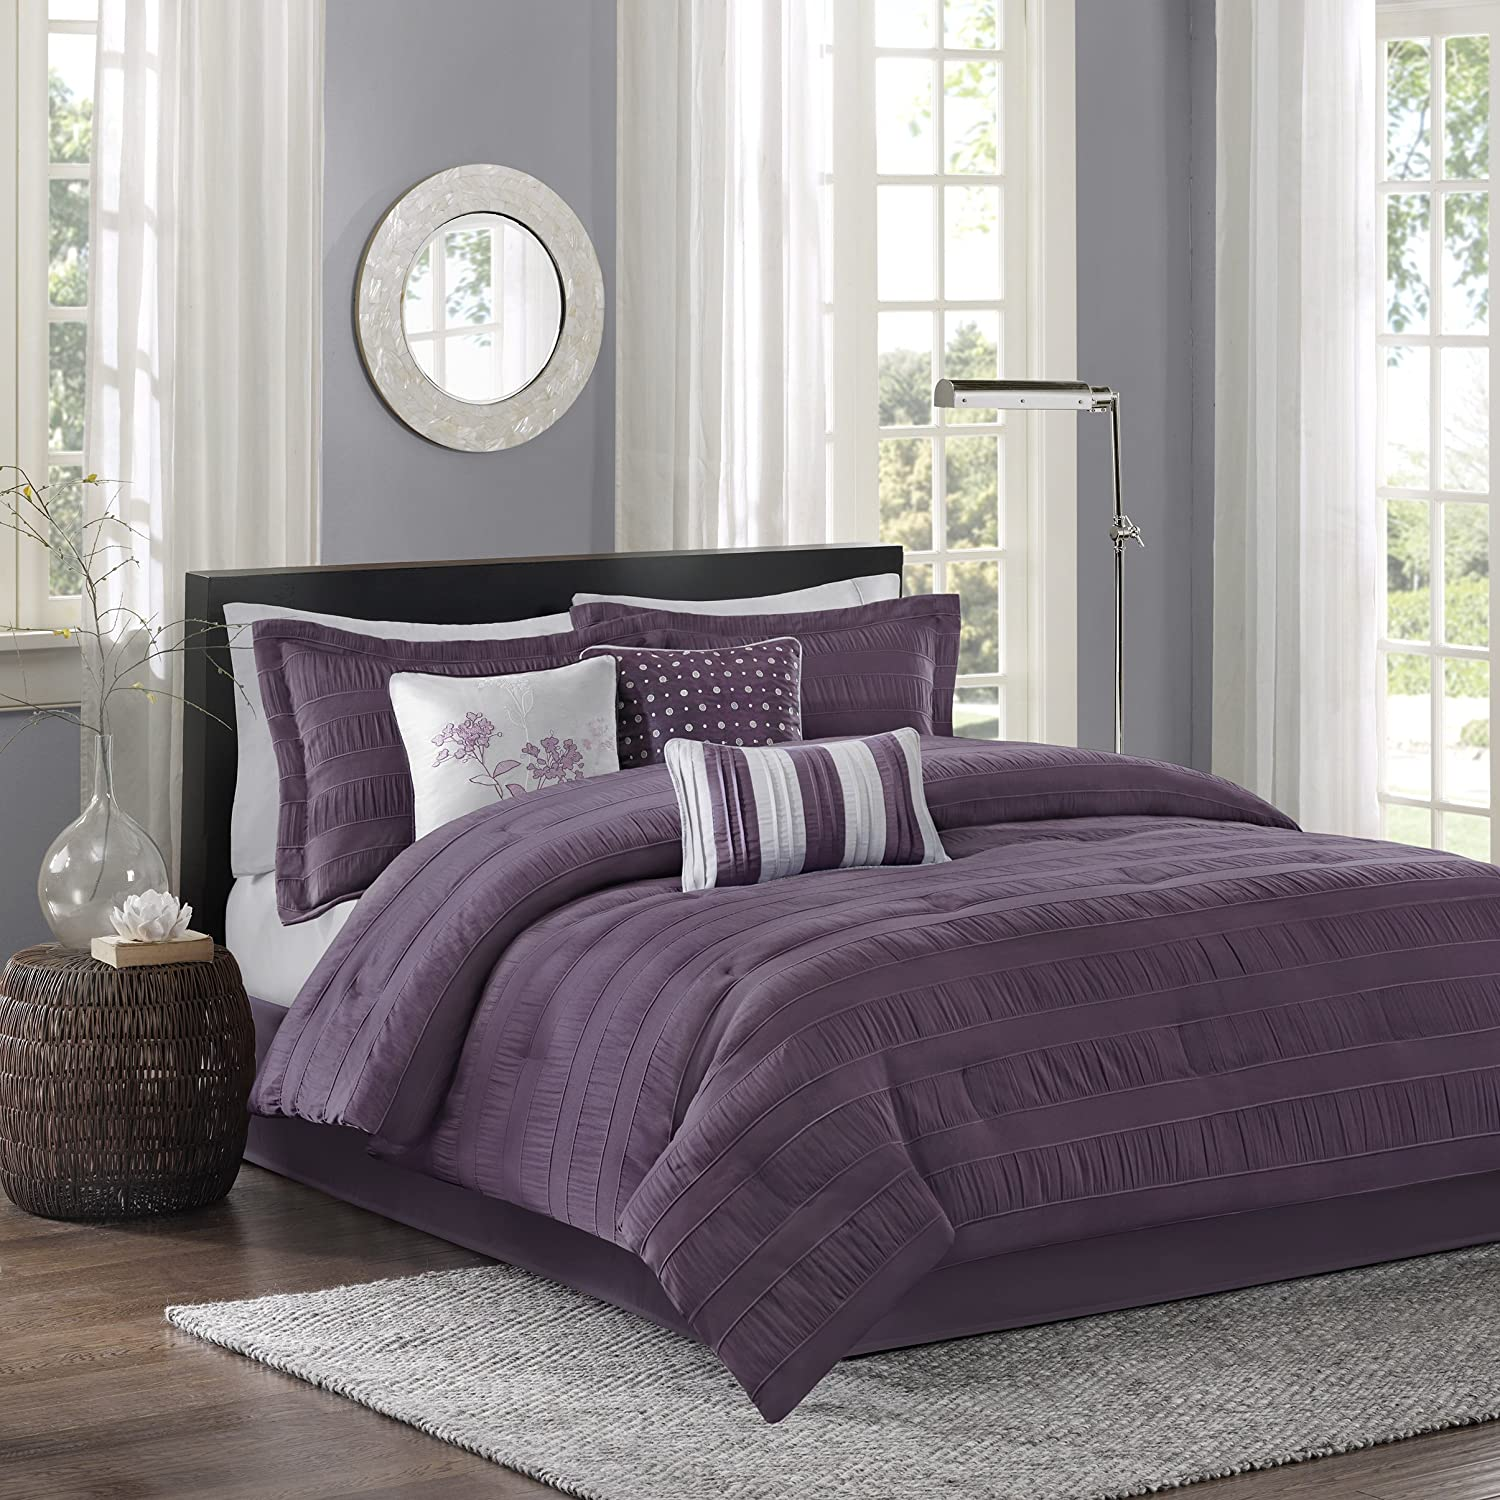 Madison Park Bedding Sets – Ease Bedding with Style